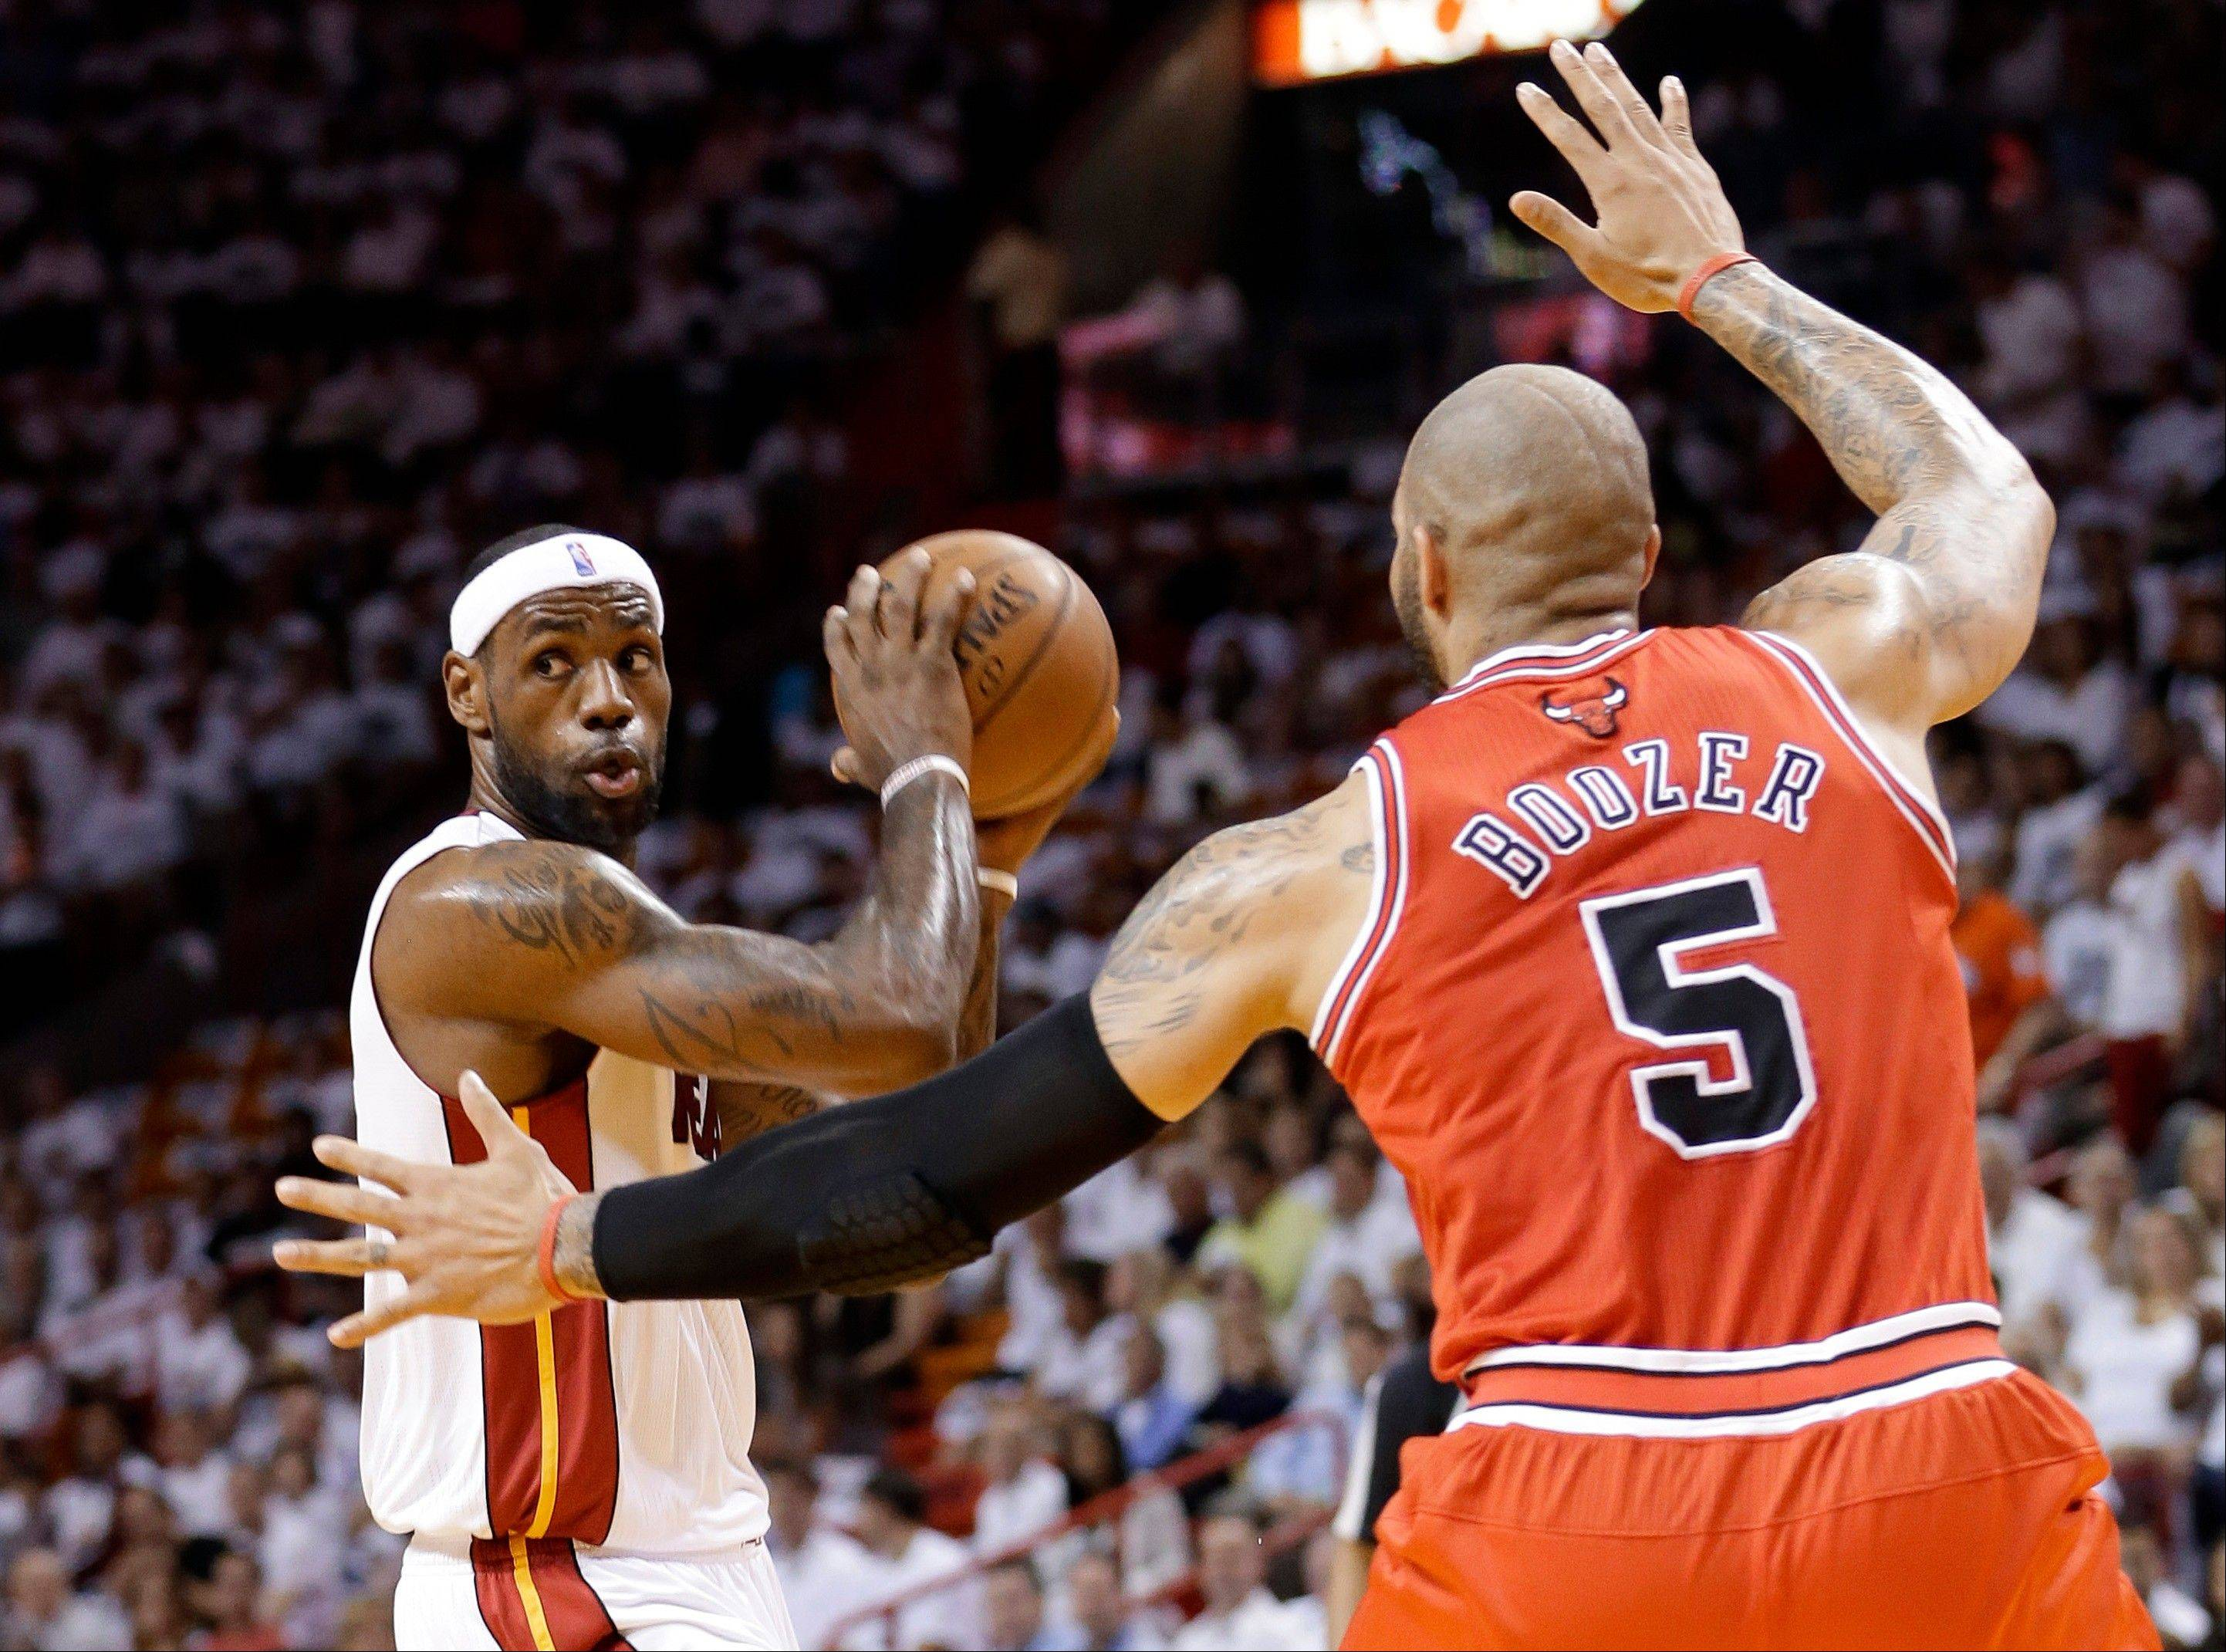 Miami Heat's LeBron James, left, looks to pass as Chicago Bulls' Carlos Boozer (5) defends during the first half of Game 5 of an NBA basketball Eastern Conference semifinal, Wednesday, May 15, 2013, in Miami.